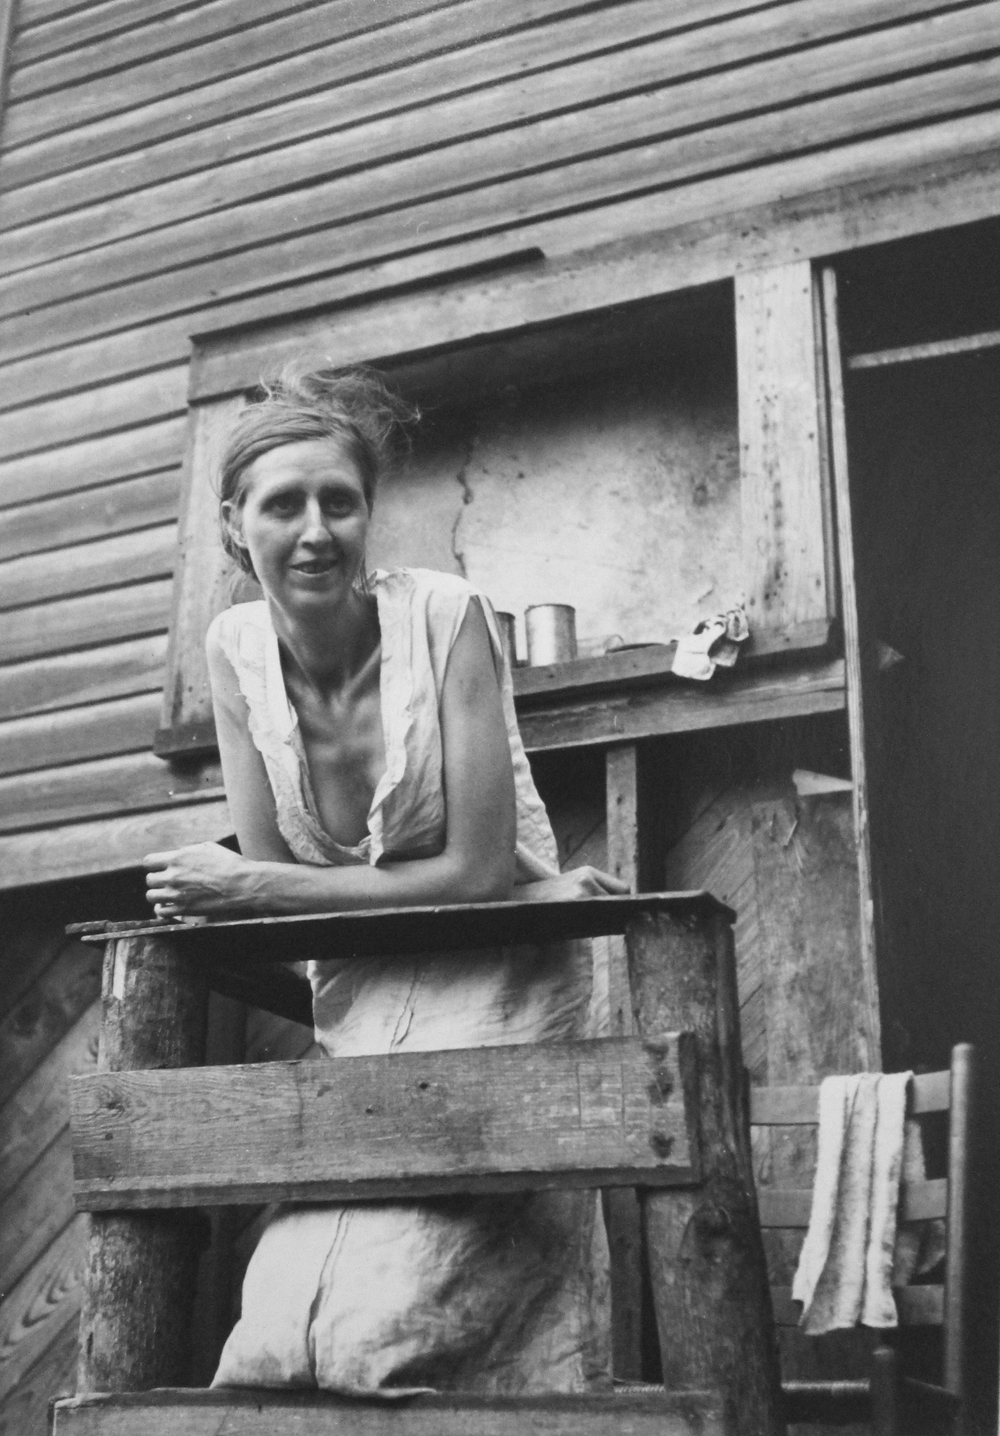 Marion Post Wolcott, Miners wife on the porch of their home, an abandoned company store, Pursglove, West Virginia, 1938 gelatin silver print, signed by Lee Wolcott, 5 x 7 inches